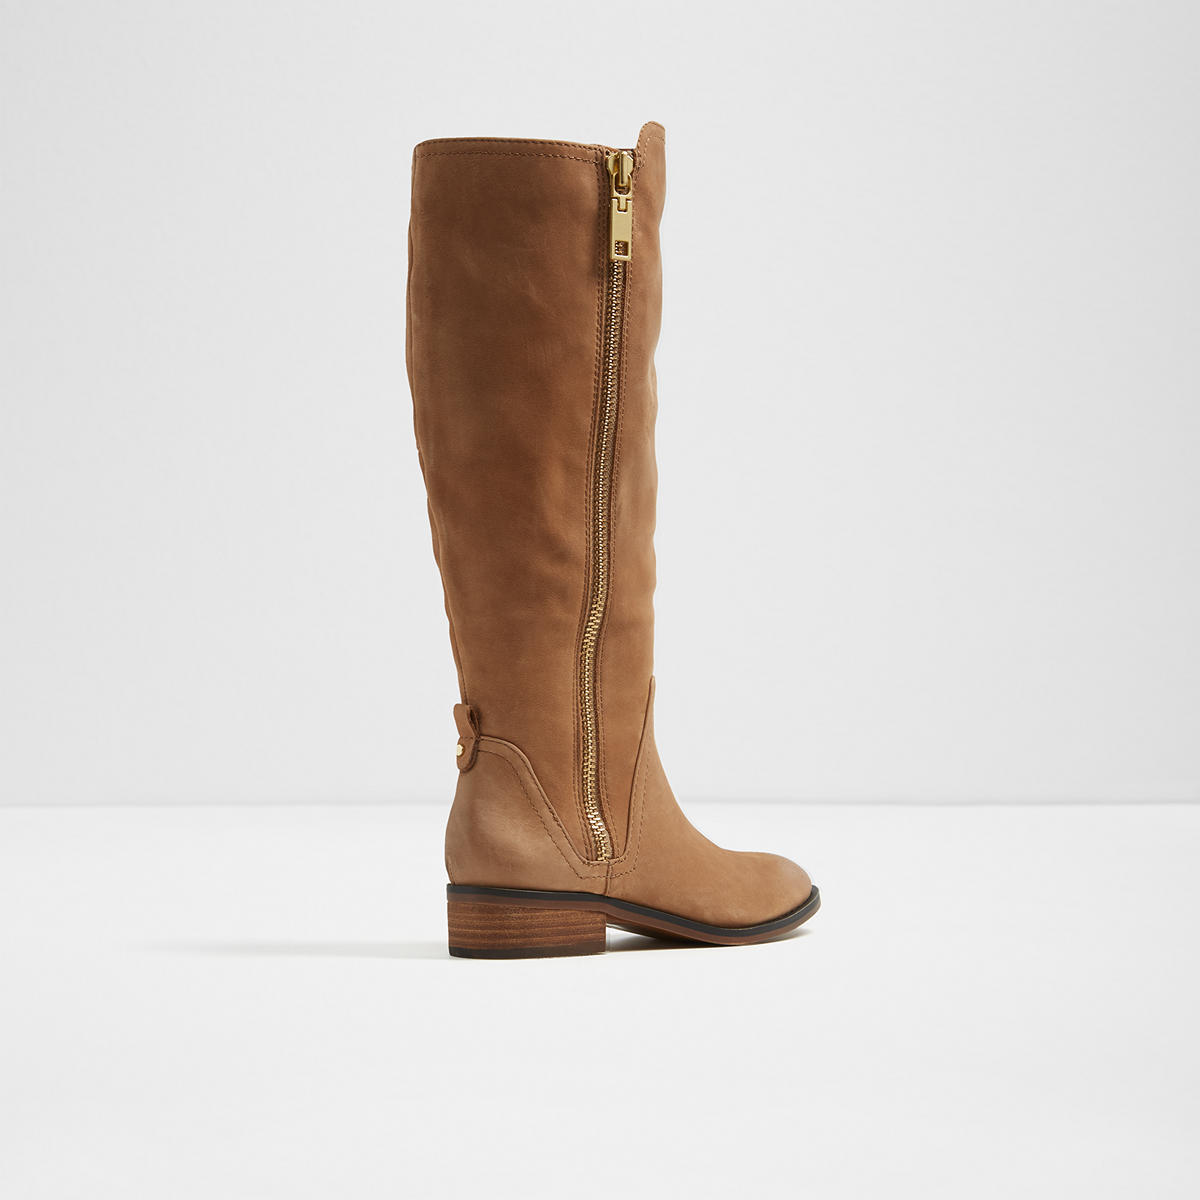 aldo shoes boots with narrow calf fitting